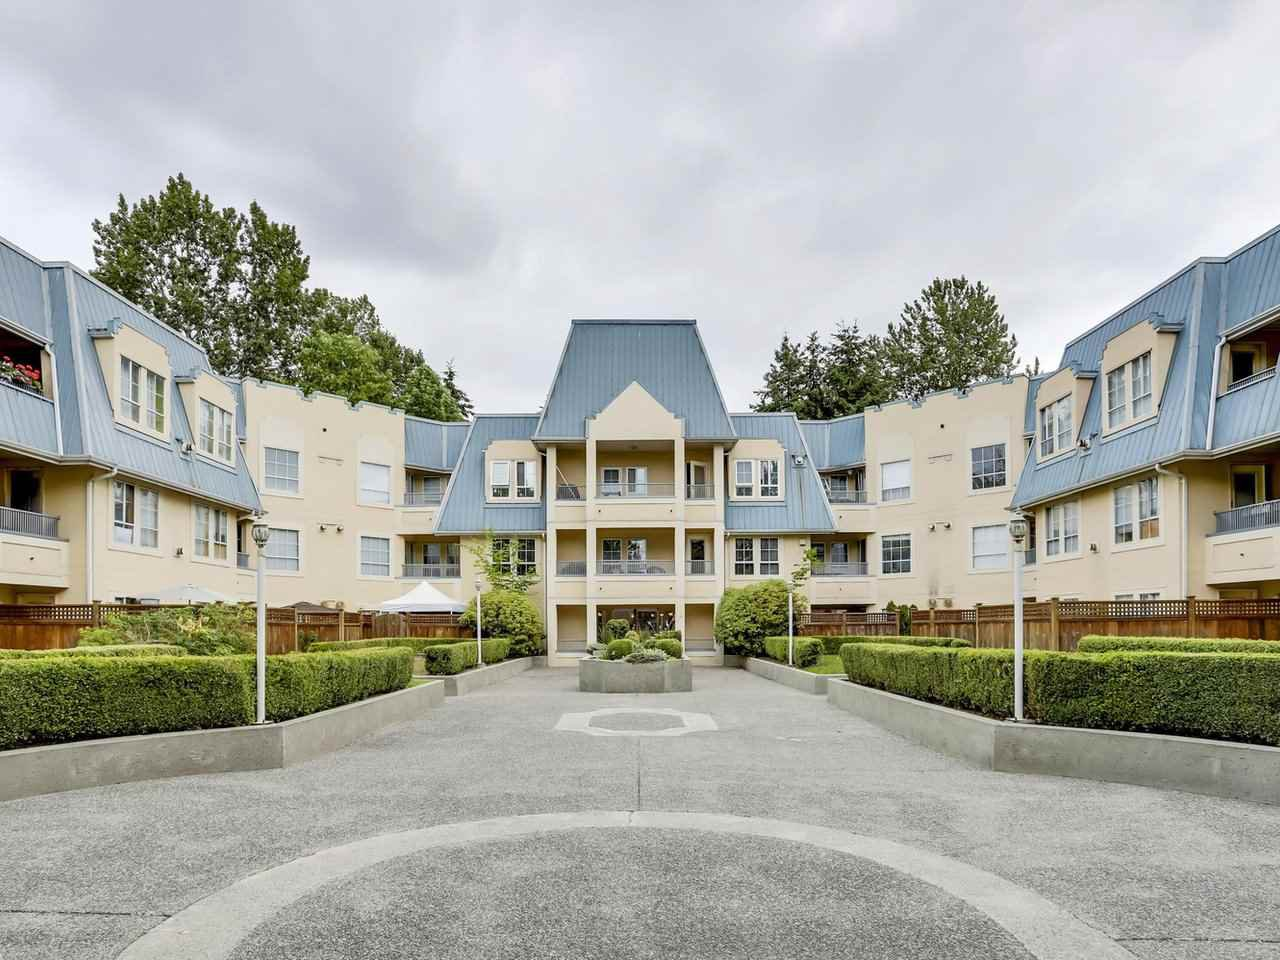 Photo 1: Photos: 107 295 SCHOOLHOUSE Street in Coquitlam: Maillardville Condo for sale : MLS®# R2286753